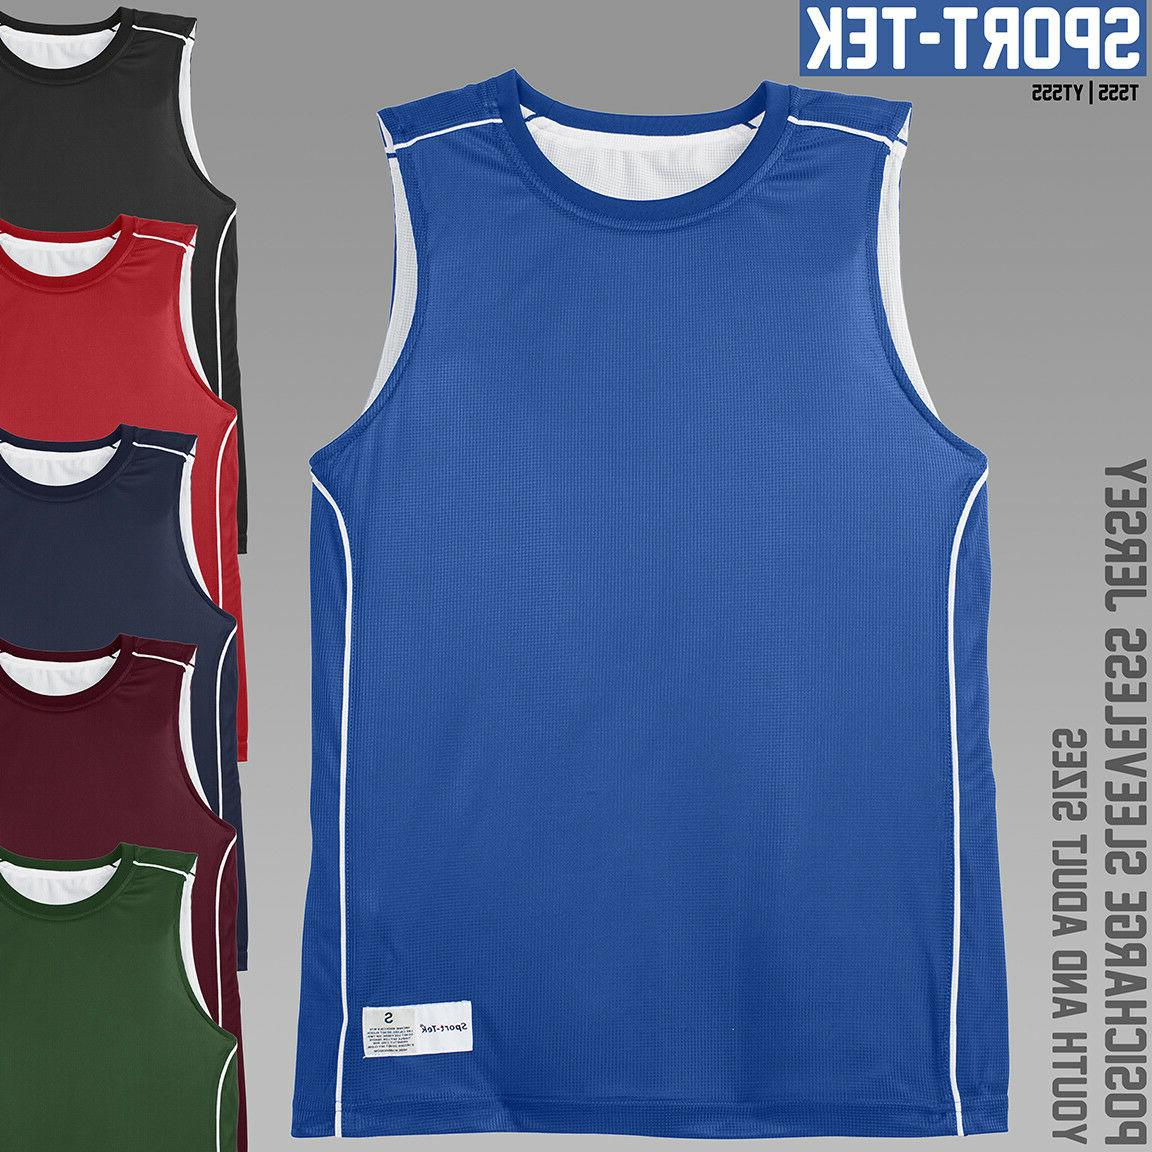 Reversible Basketball Jerseys *** Sport-Tek T555 / YT555 ***